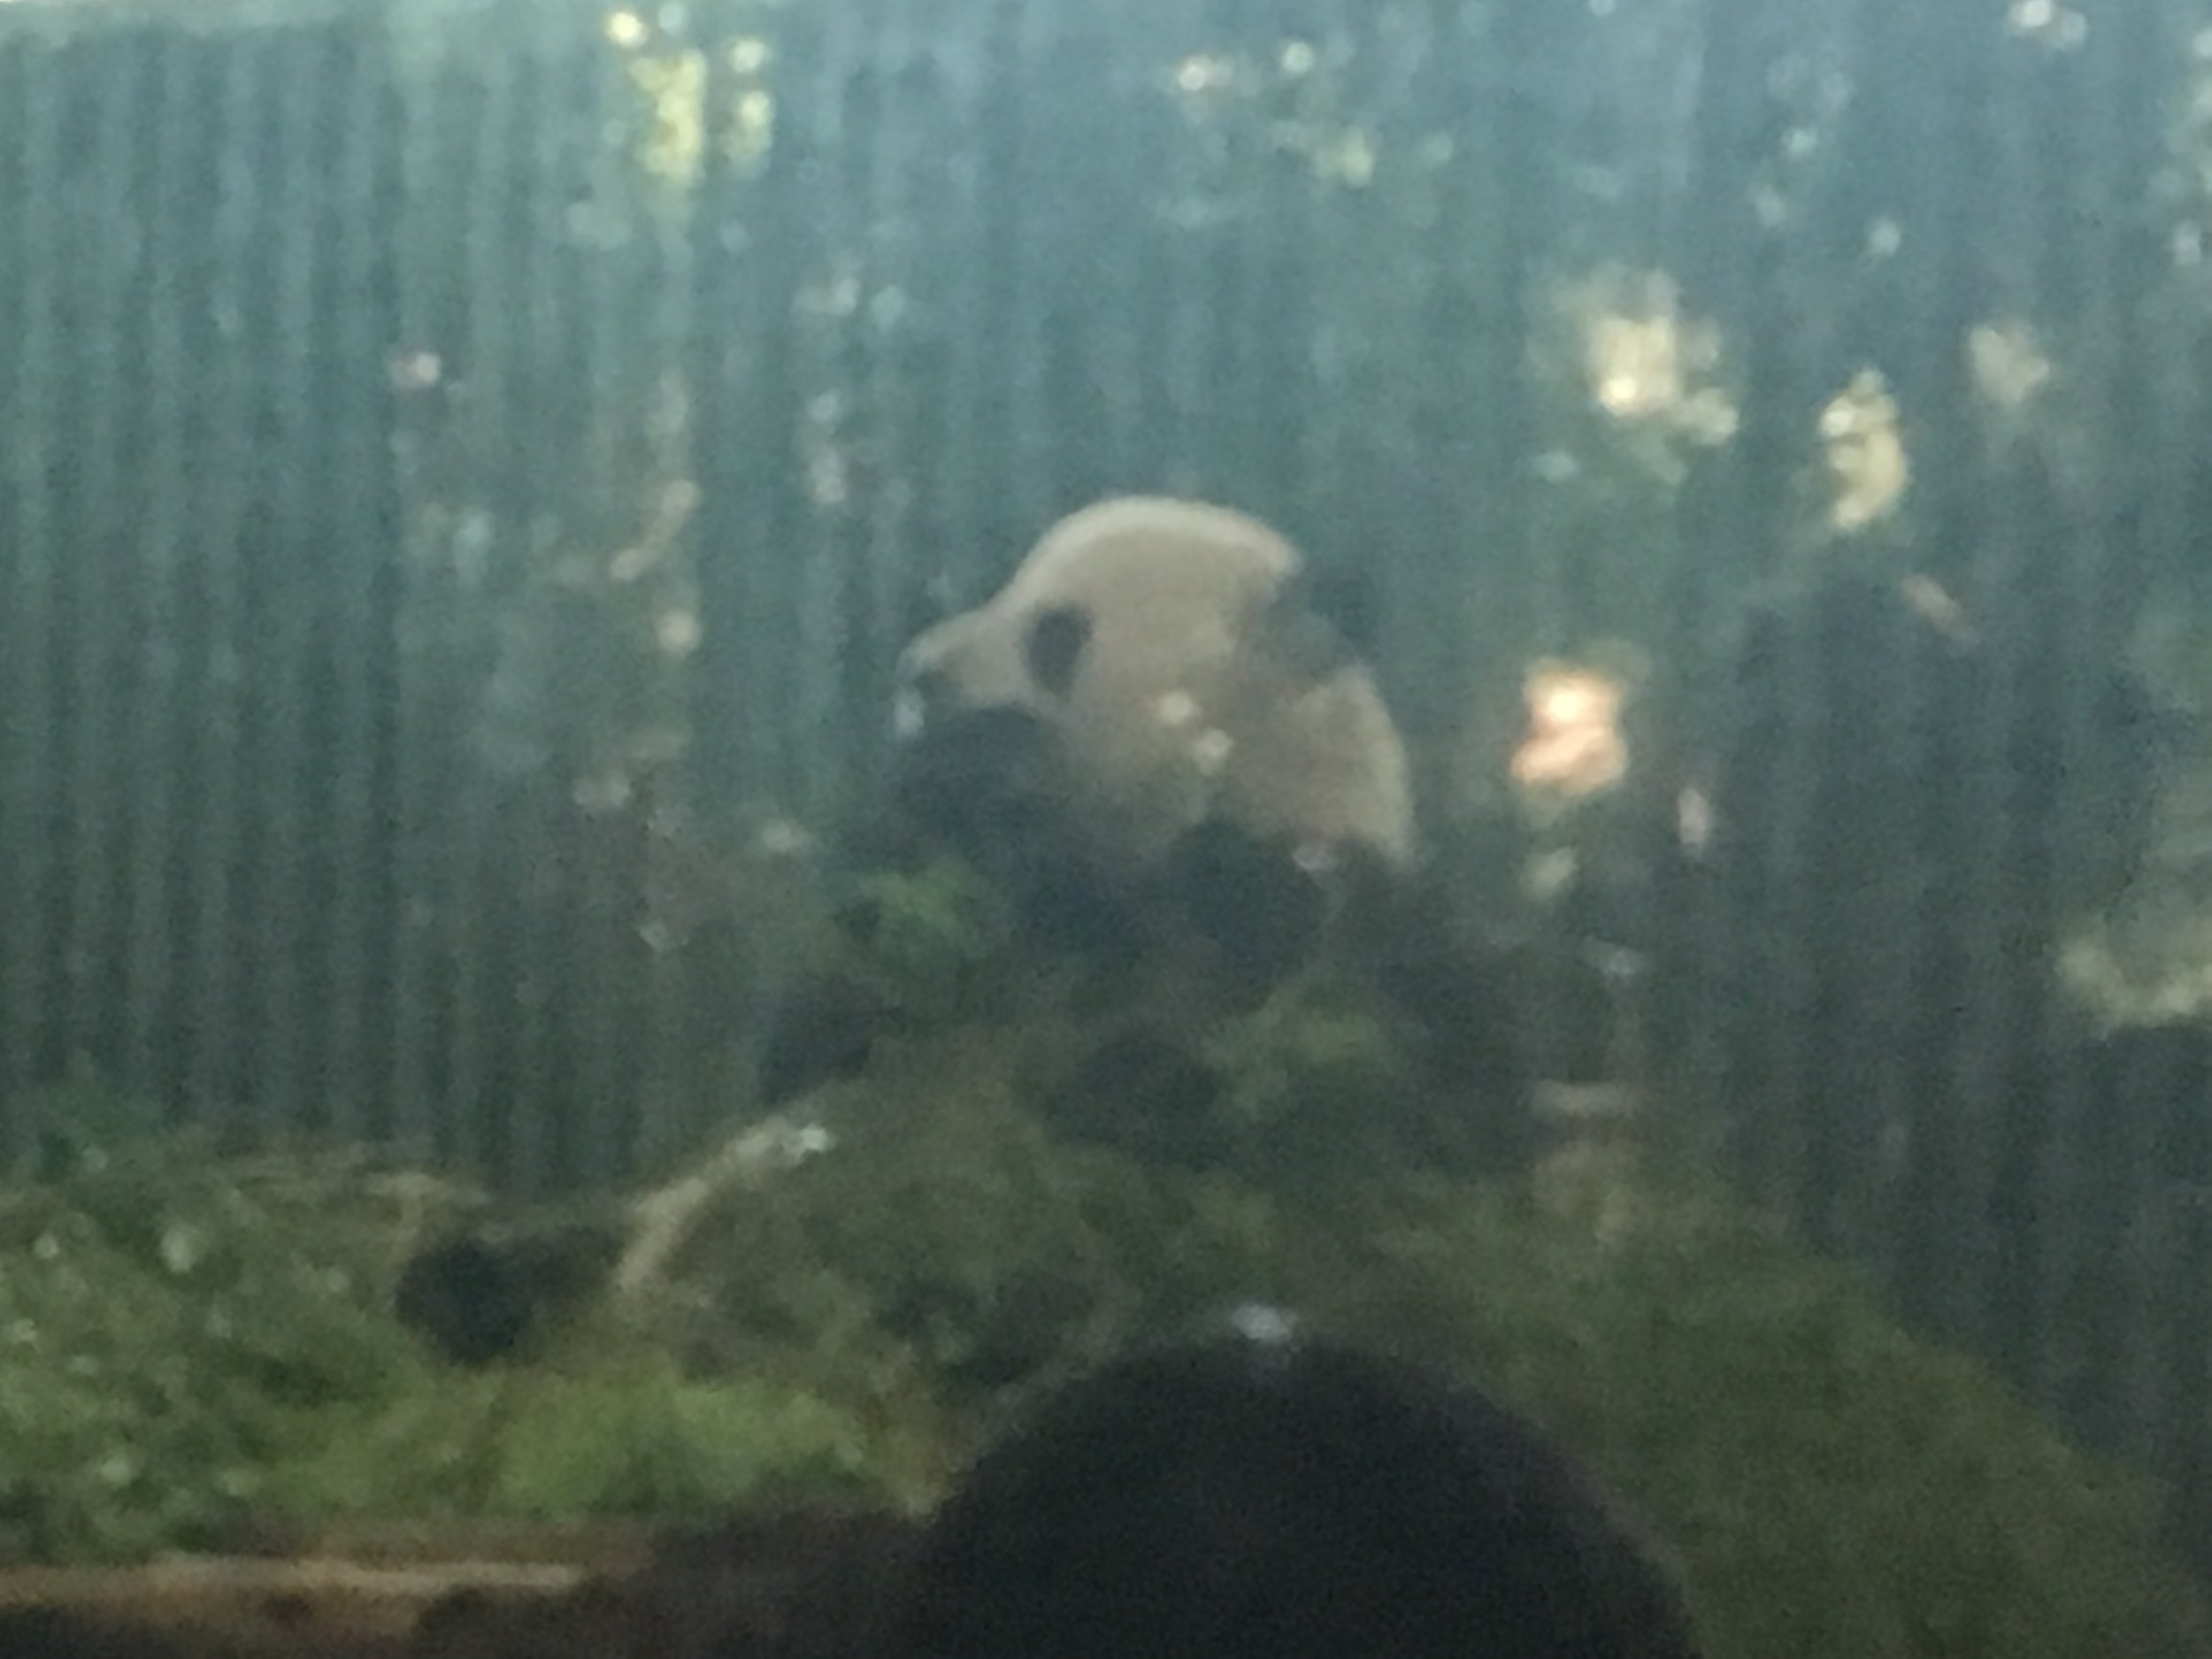 Spirt Animal PANDA  - Shanghai Zoo - I mean if you didn't get a picture of a Panda did you even really go?!?